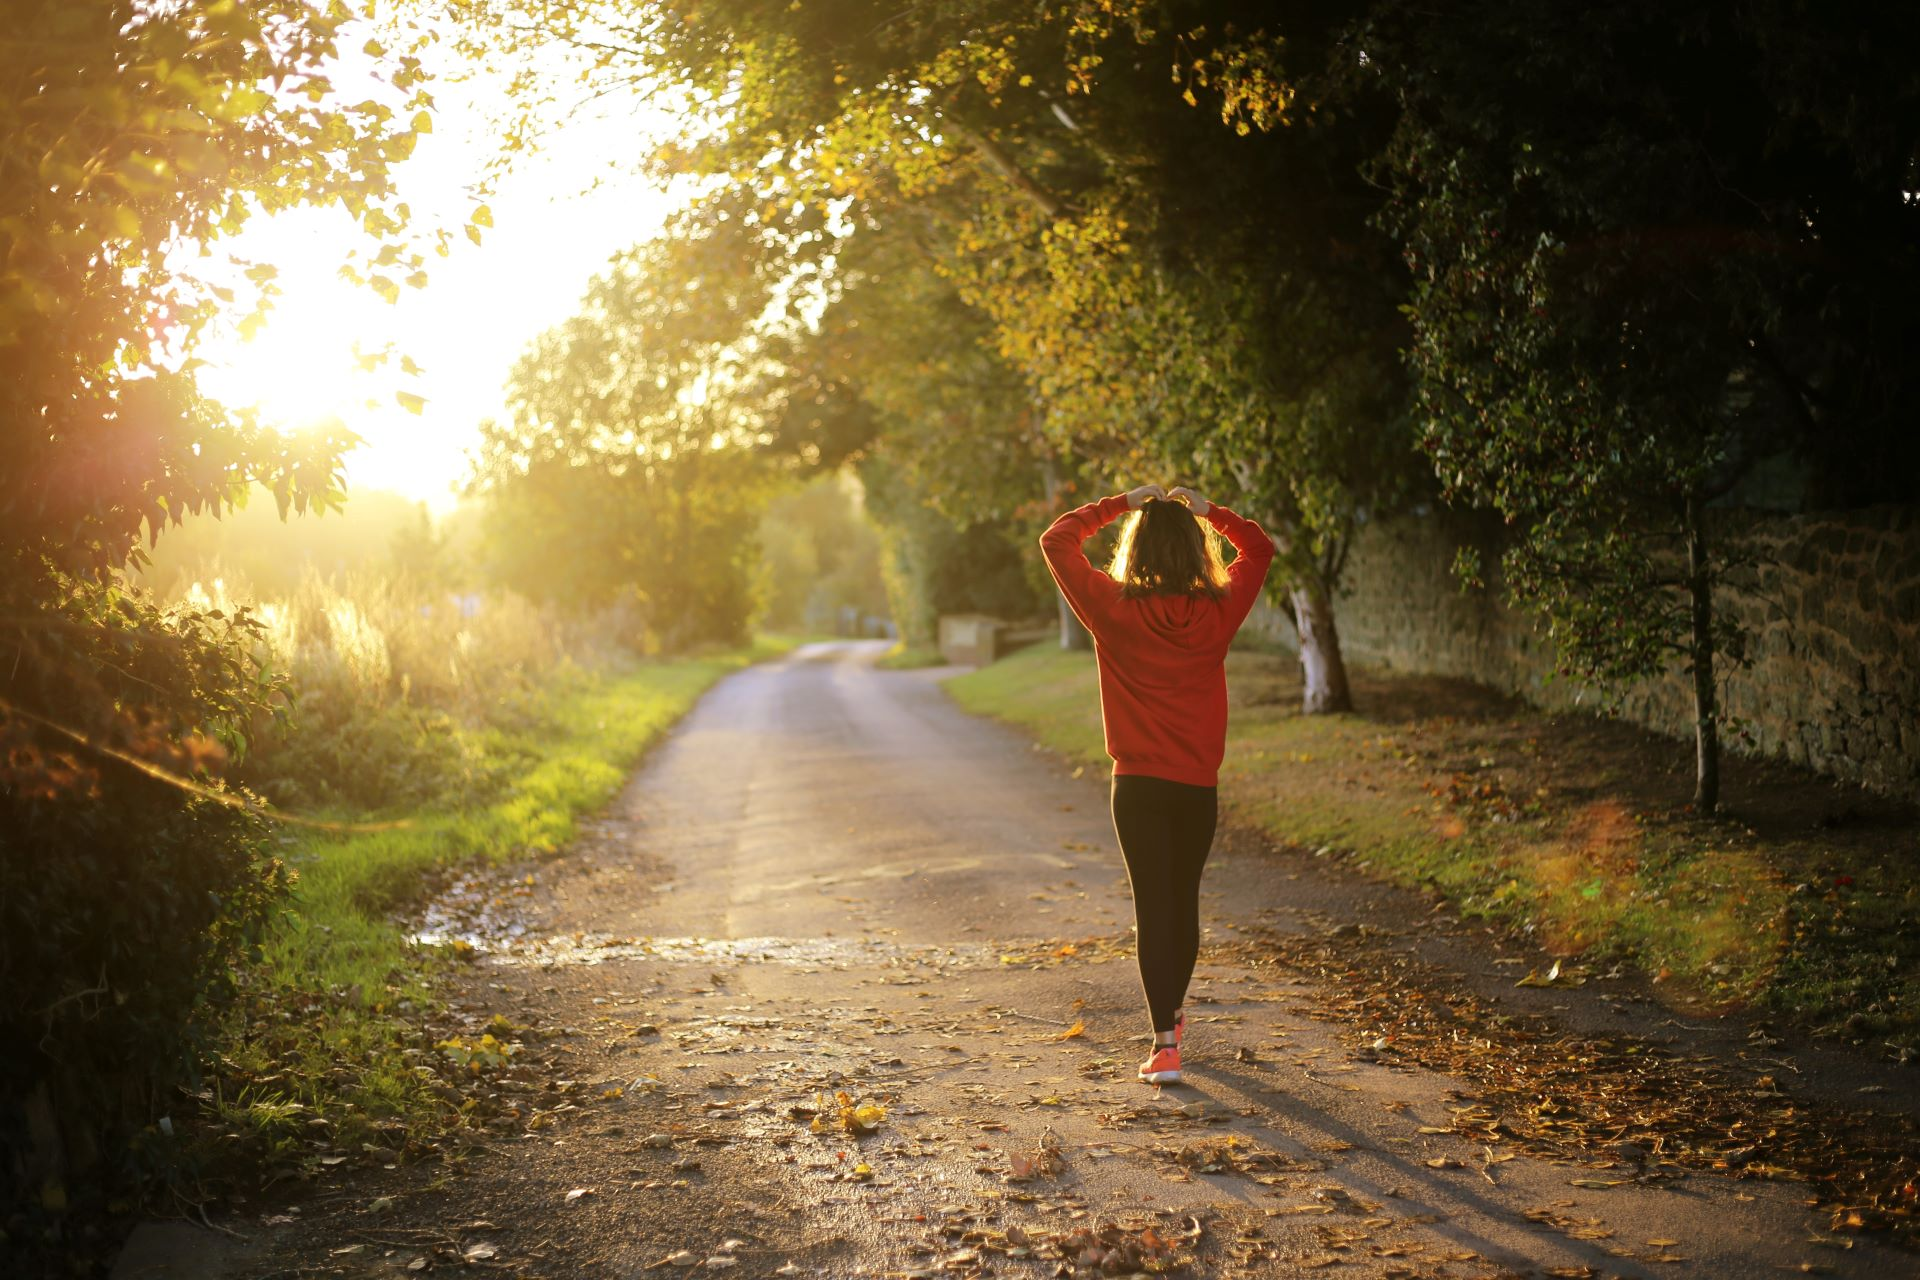 How To Breathe Properly When Running?